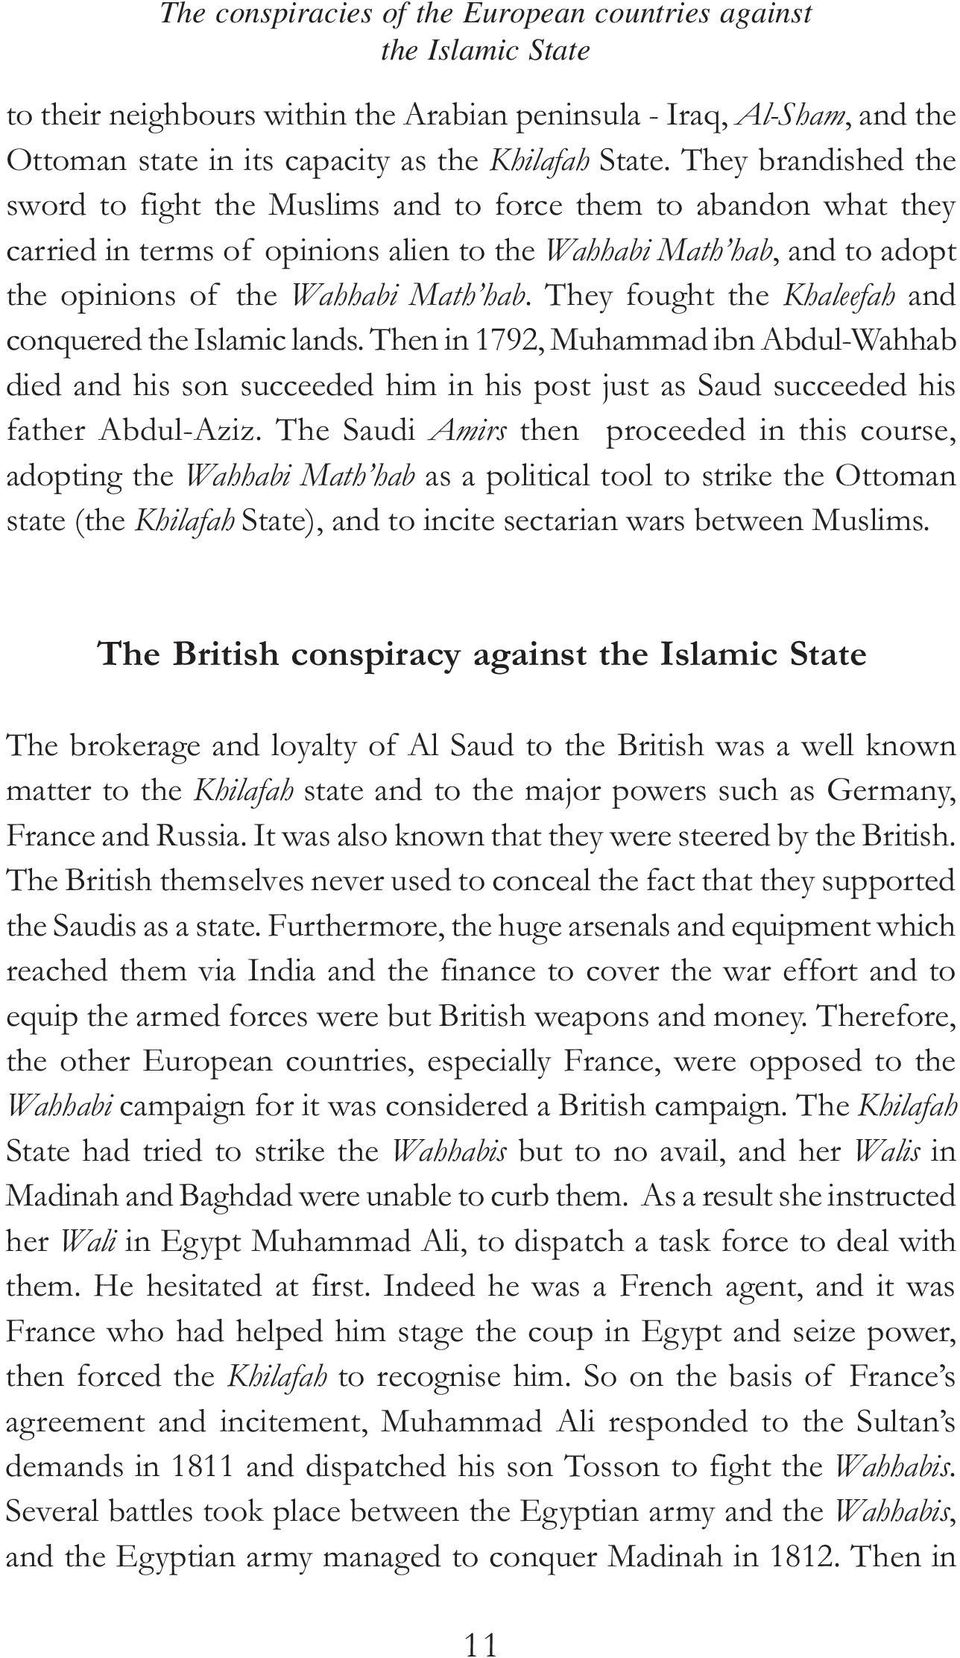 They fought the Khaleefah and conquered the Islamic lands. Then in 1792, Muhammad ibn Abdul-Wahhab died and his son succeeded him in his post just as Saud succeeded his father Abdul-Aziz.